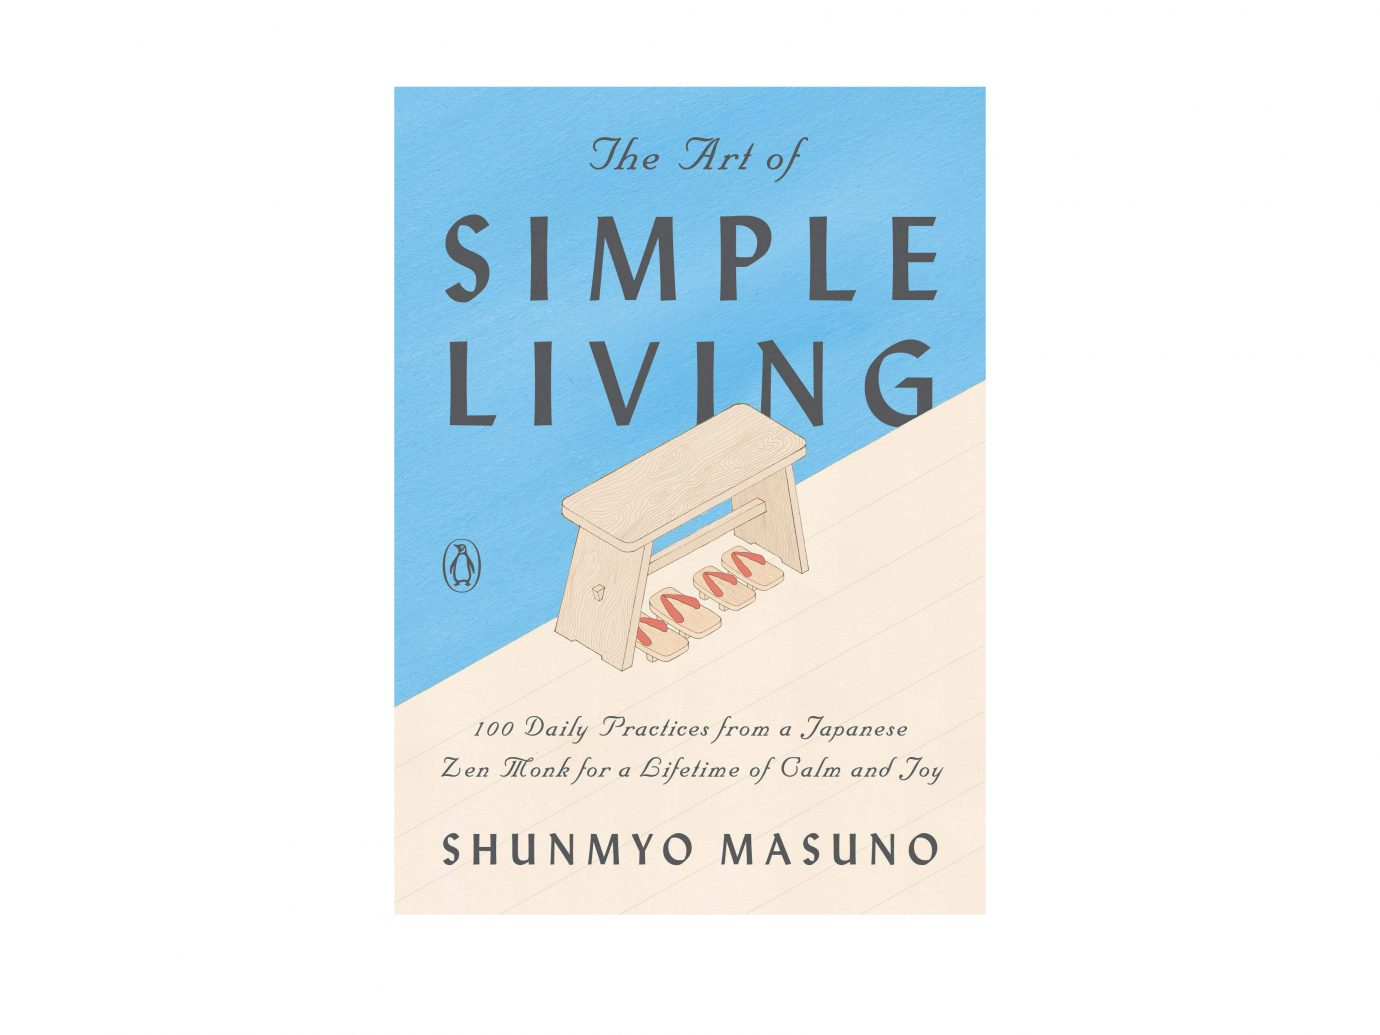 The Art of Simple Living by Shunmyo Masuno